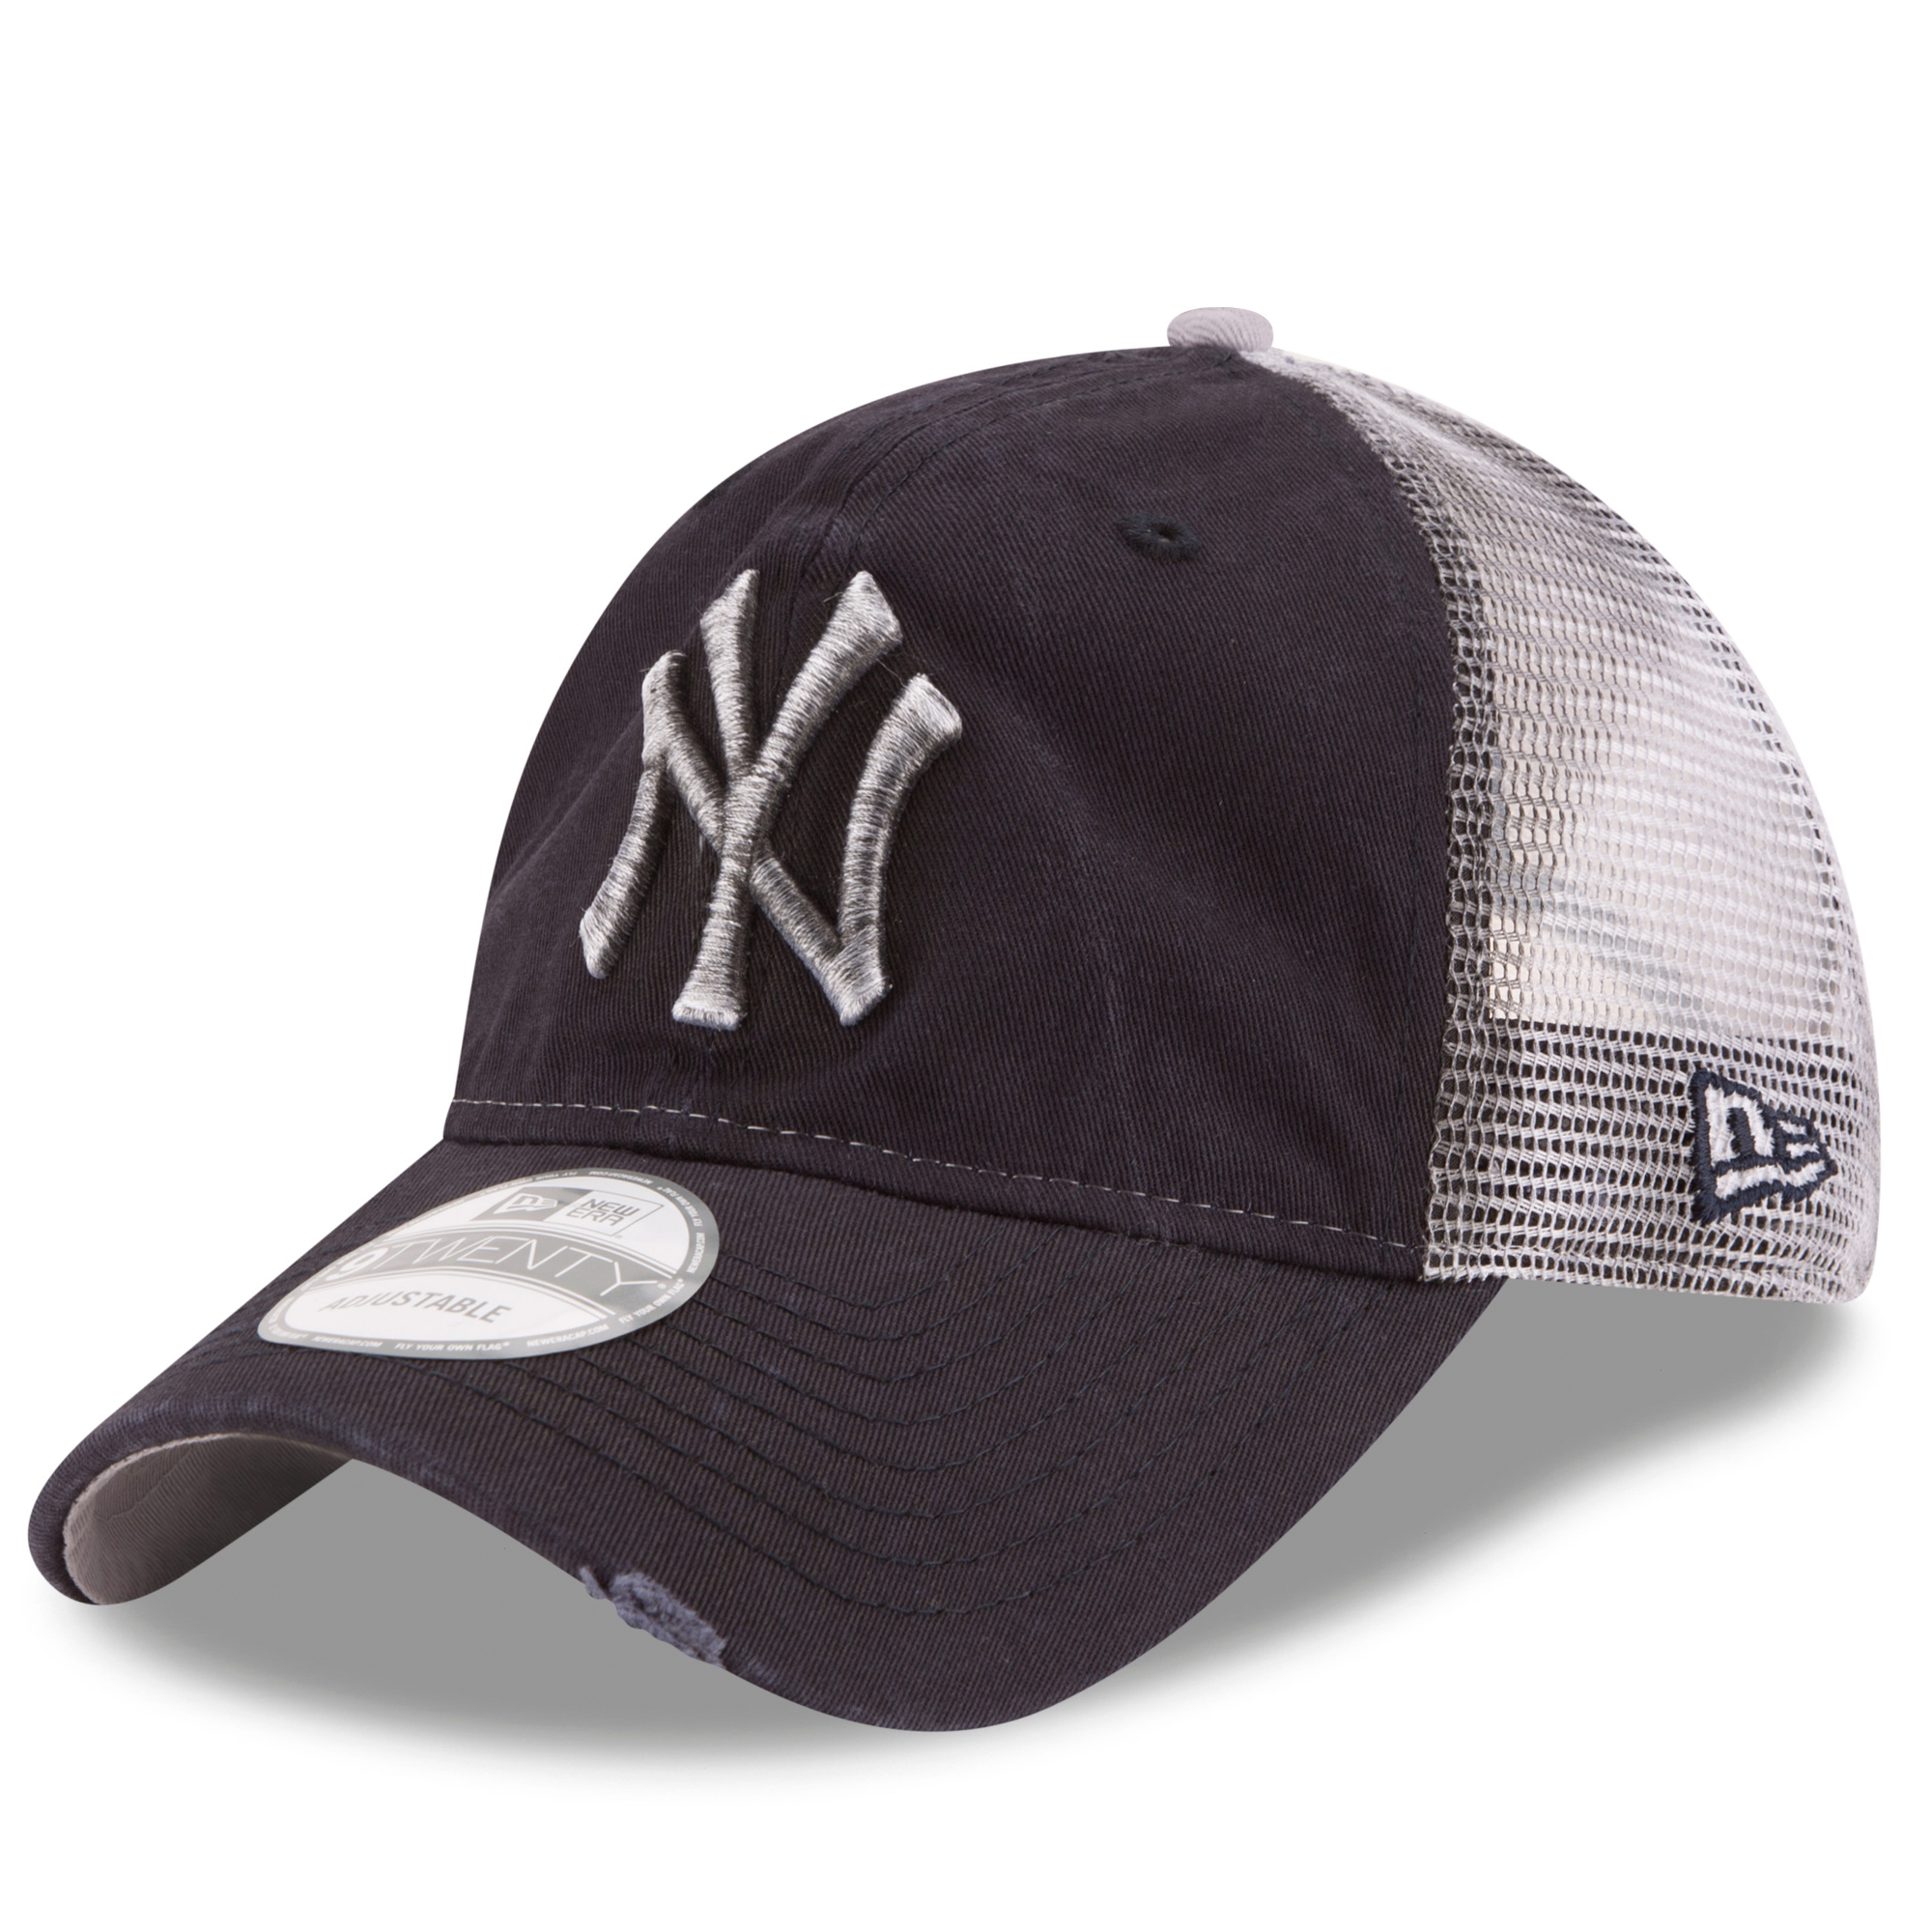 67c3b57dde7 New York Yankees New Era Team Rustic Trucker 9TWENTY Adjustable Hat - Navy  - OSFA - Walmart.com